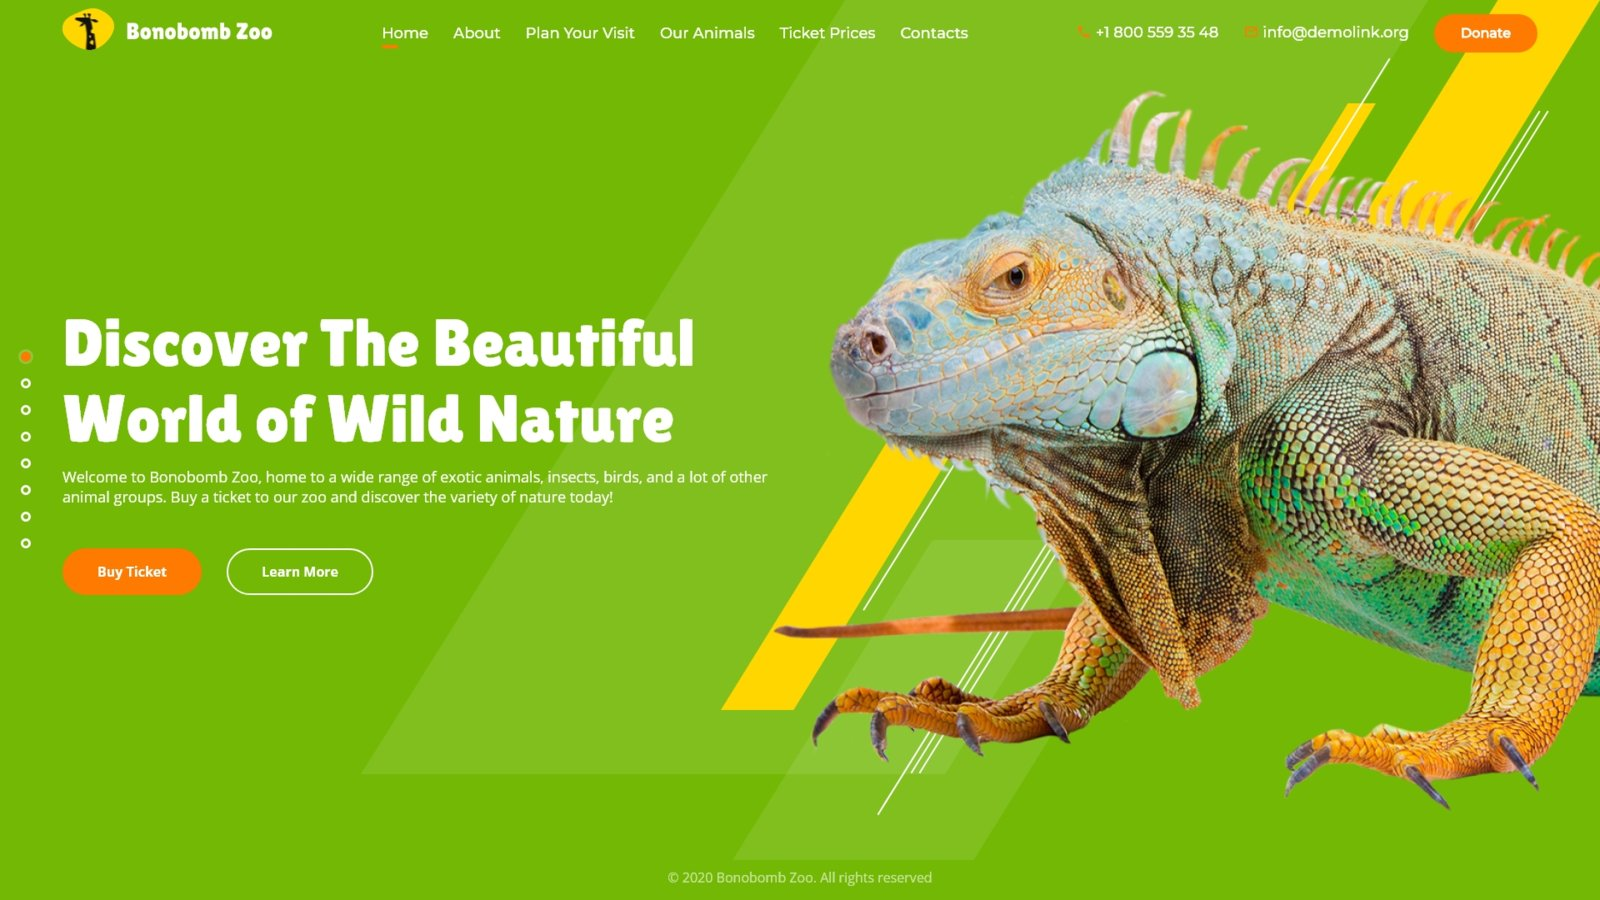 Bonobomb - Full Animated Zoo Website Template